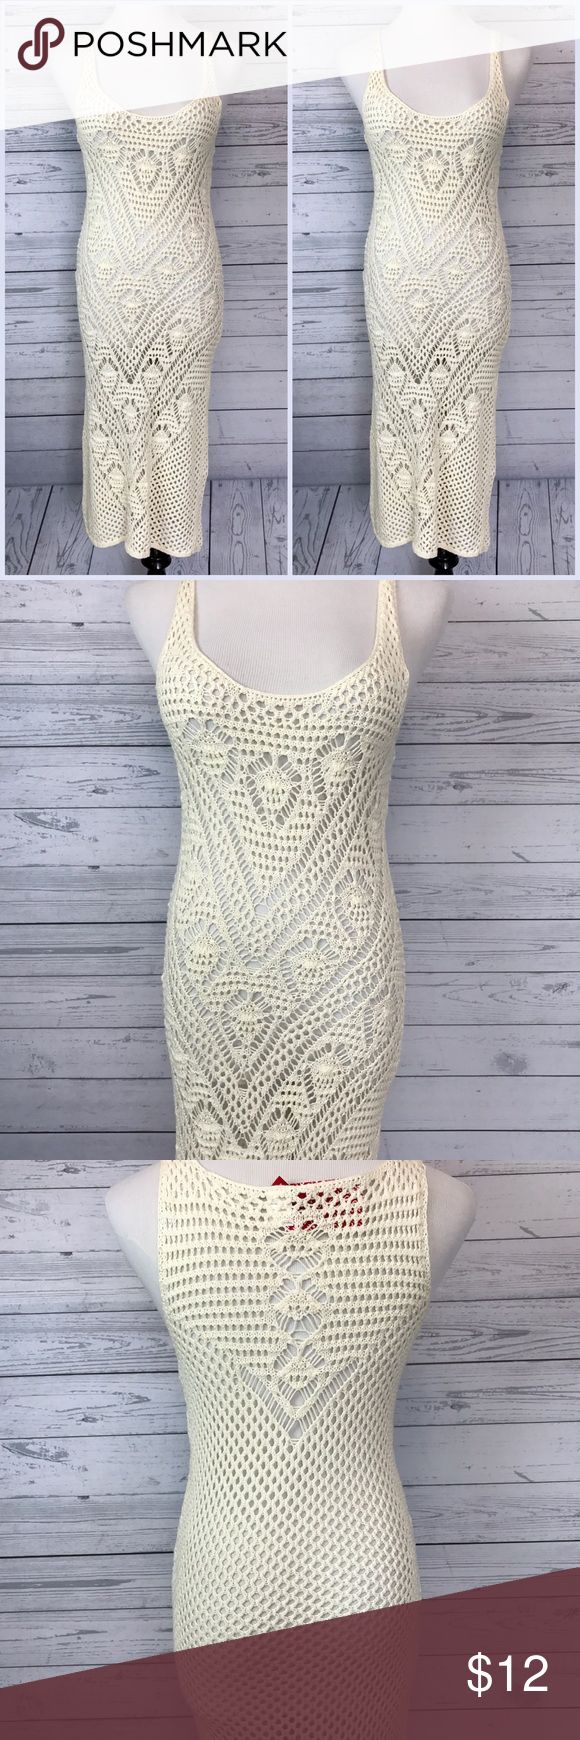 "H&M Knitted See-Thru Dress NWT. Still in very good condition. 💯 Cotton. Length-43"". Pit to pit-15"". Stretchy. Bought in H&M Malaysia. H&M Dresses Midi"